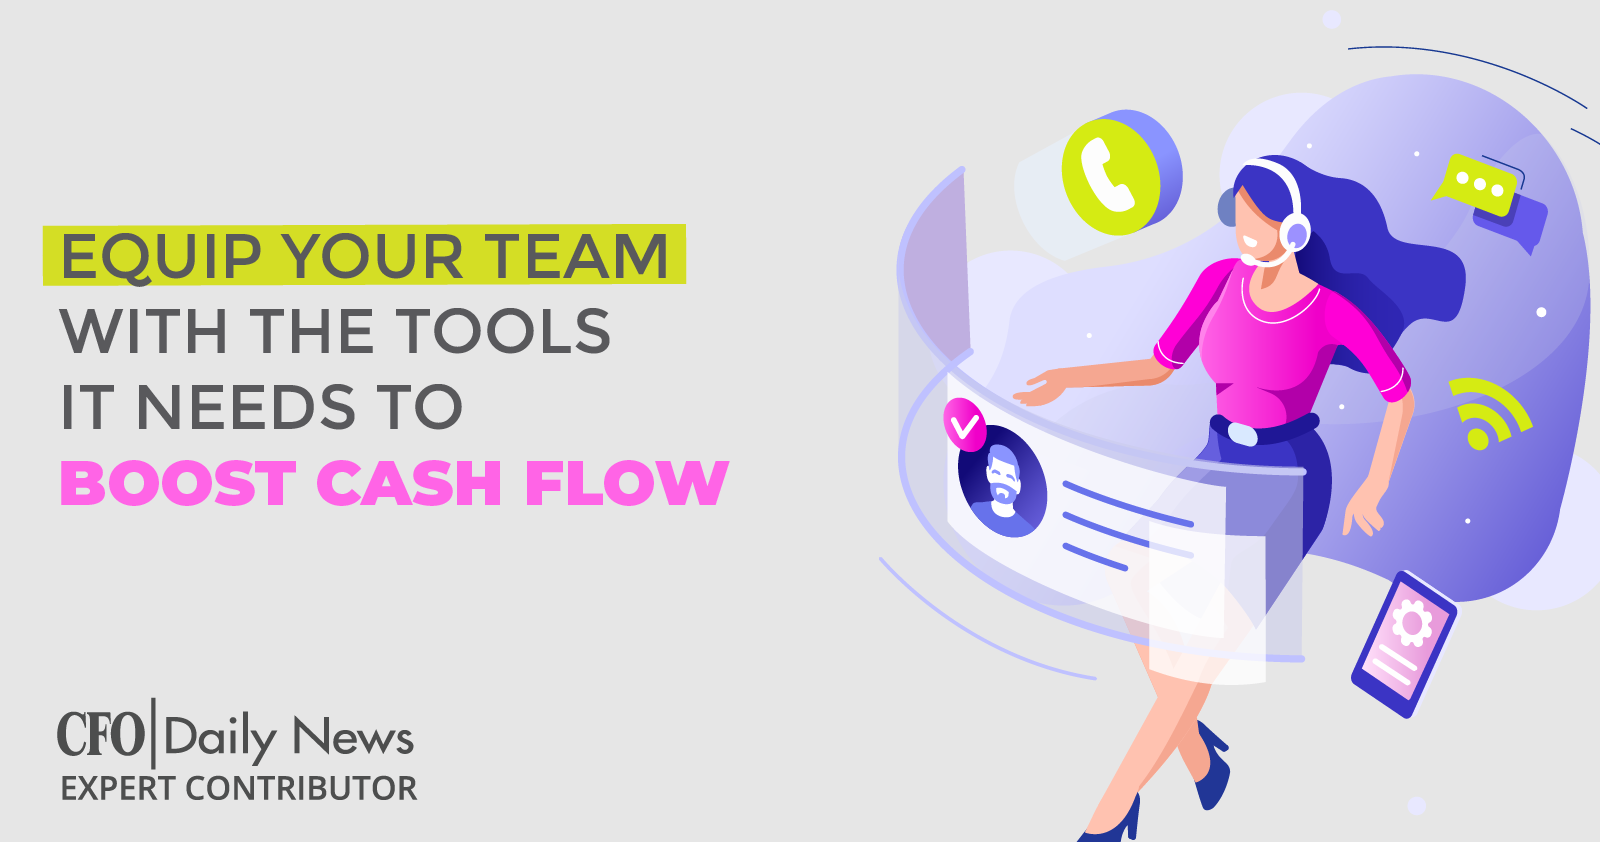 equip your team with the tools it needs to boost cash flow